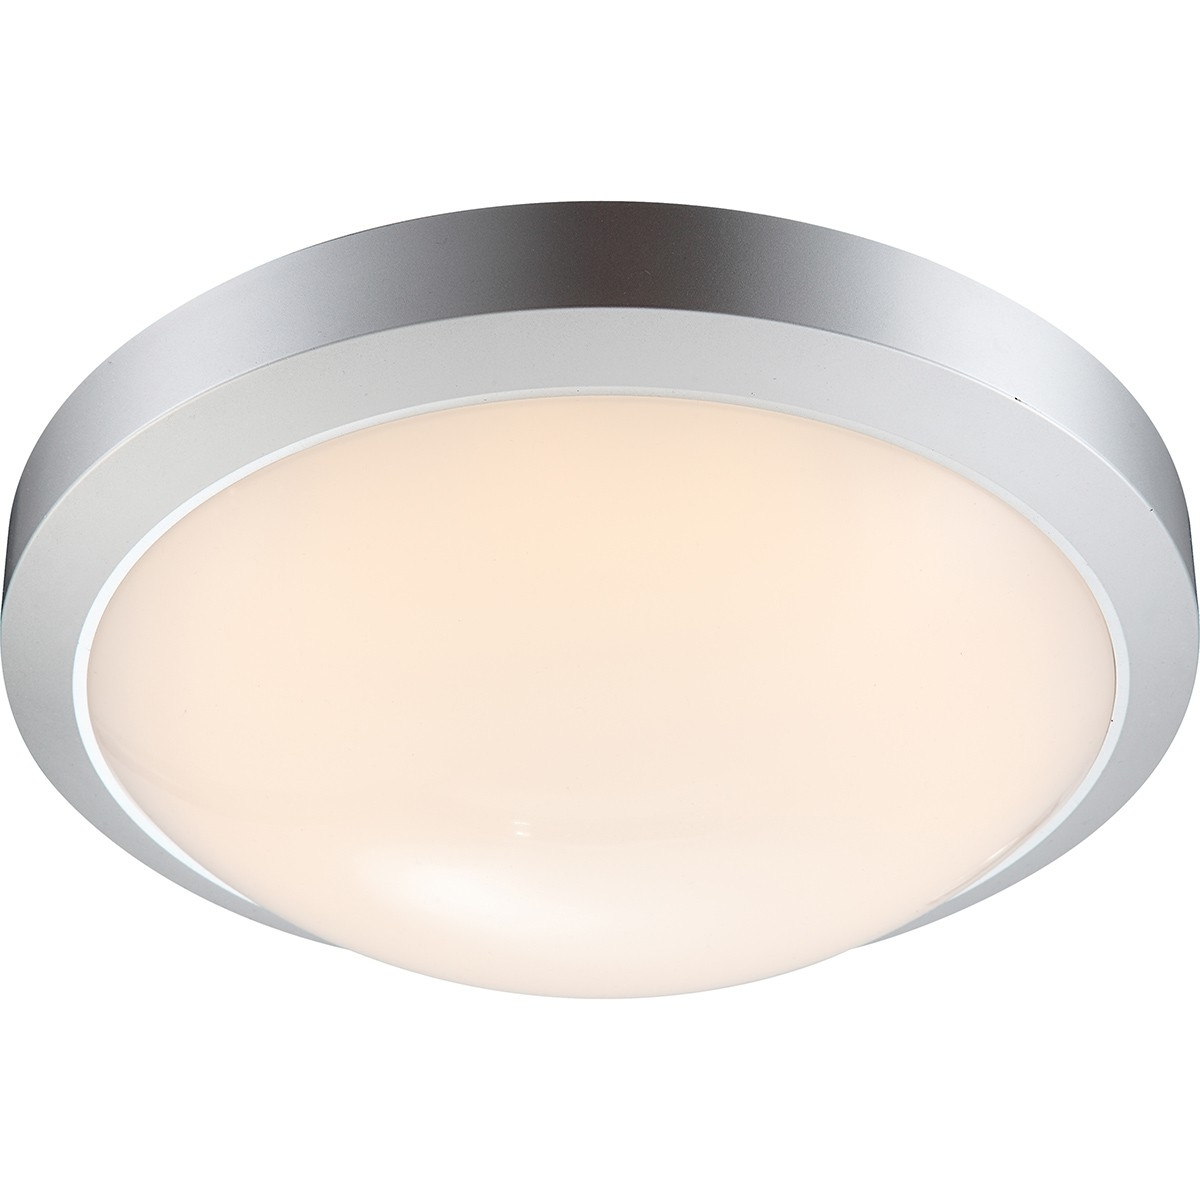 Outdoor Led Ceiling Lights Pertaining To Best And Newest Led Outdoor Ceiling Light , John Globo 32107 – Big Selection Of Lights (View 14 of 20)